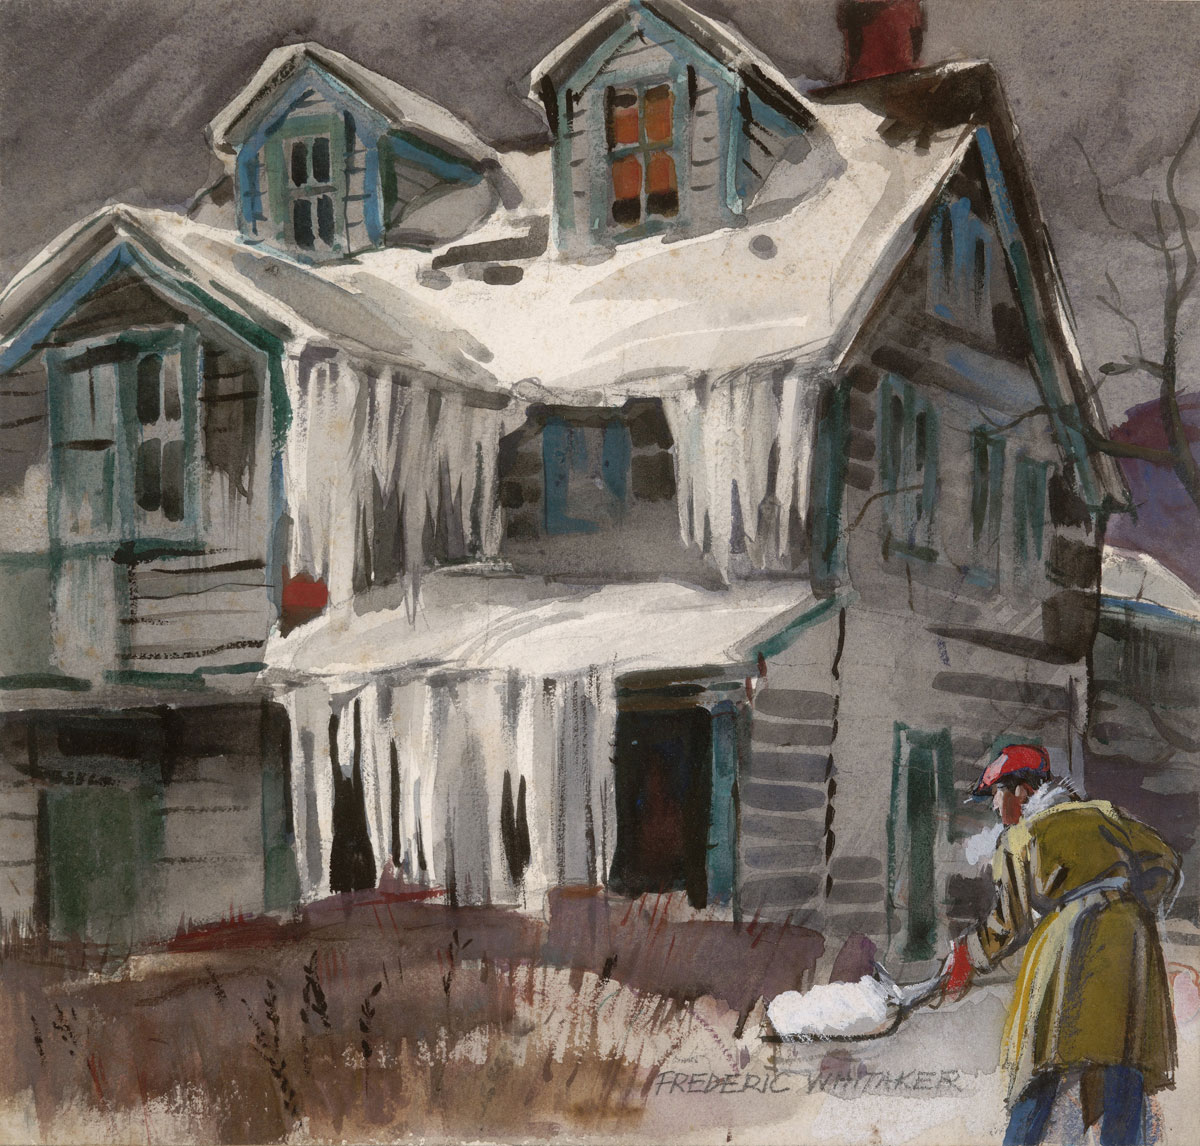 """Snow Shoveler"" 1947 © Frederic Whitaker 10x11 inches Watercolor - Livingston Manor, N.Y."